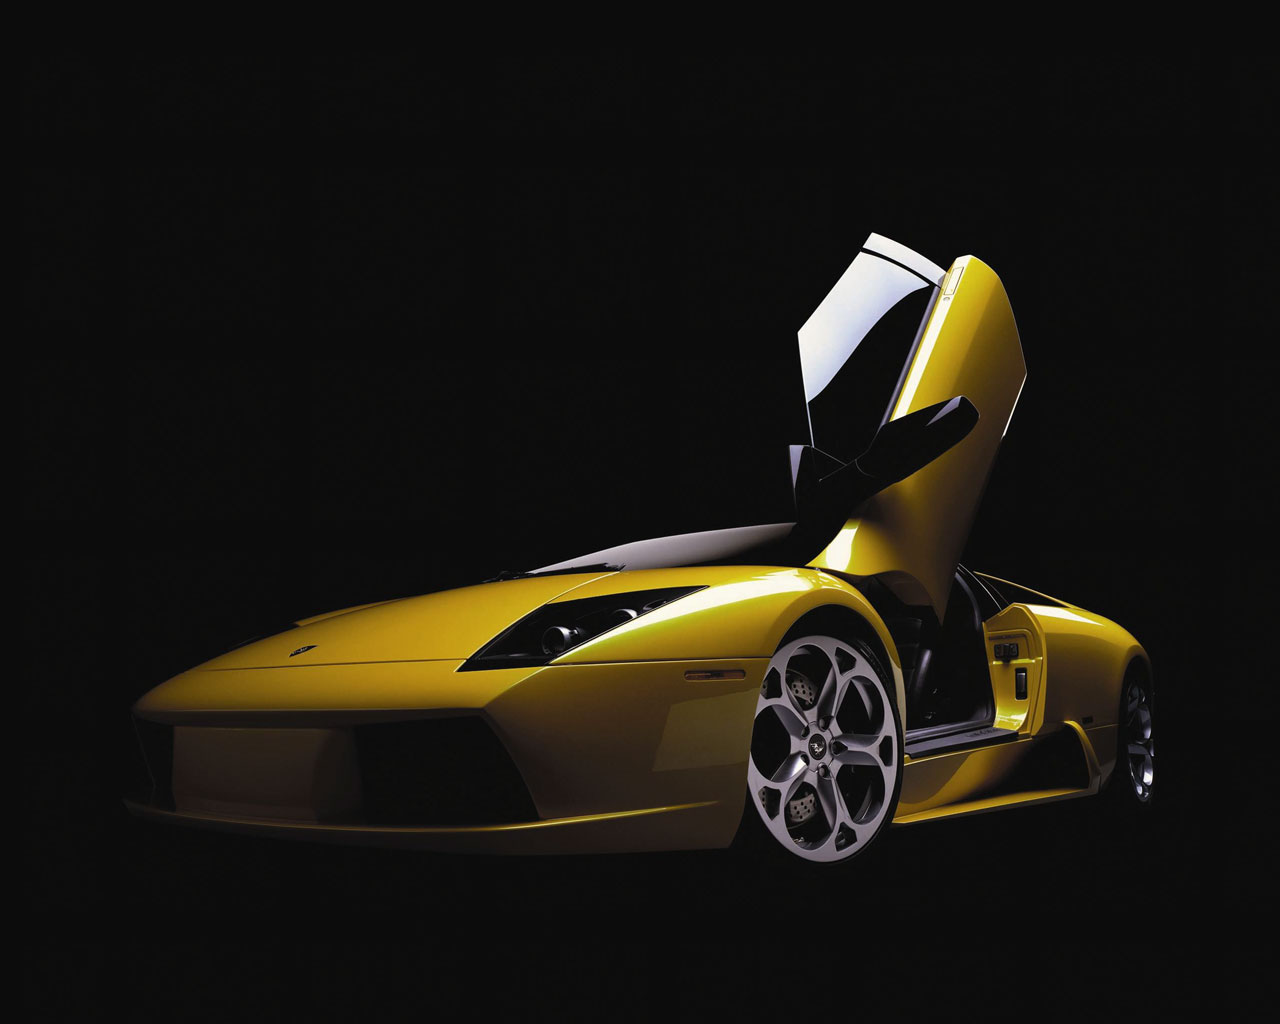 Cars Wallpapers: New Sports Speedicars: Lamborghini Cars Images